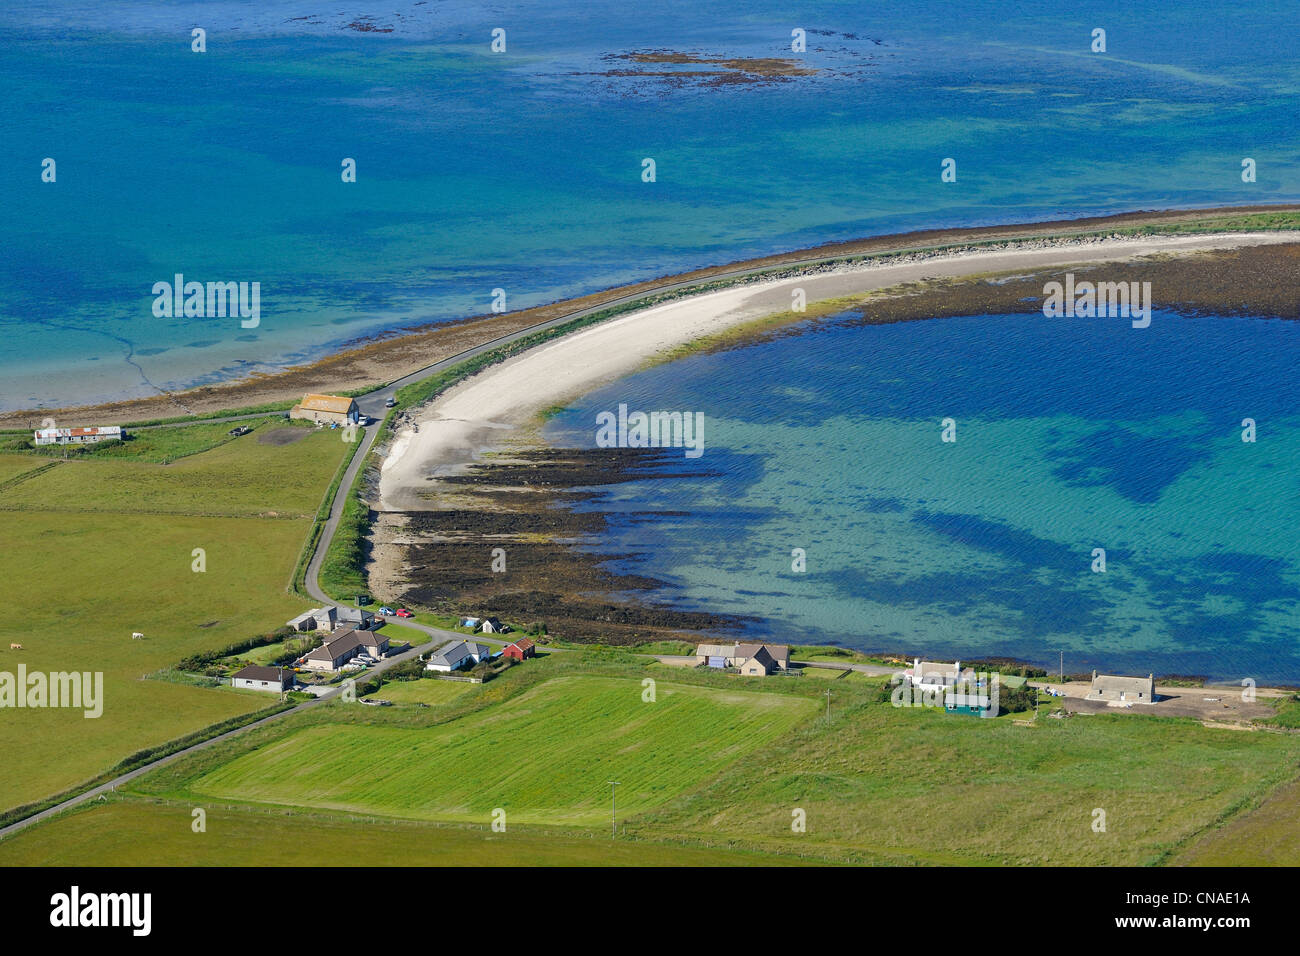 United Kingdom, Scotland, Orkney Islands, Island of Hoy, narrow causeway over the sandbank which was known as the - Stock Image